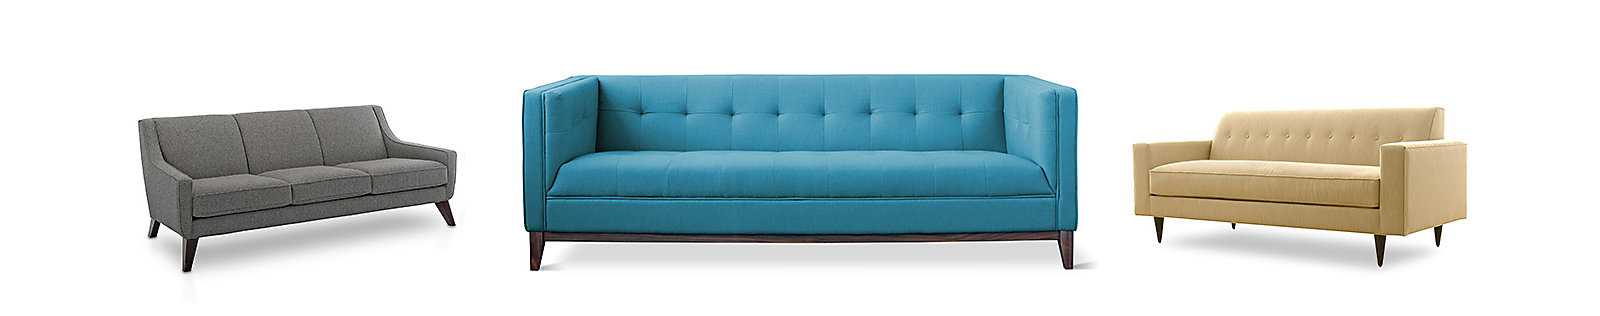 Top 7 Best Sofas